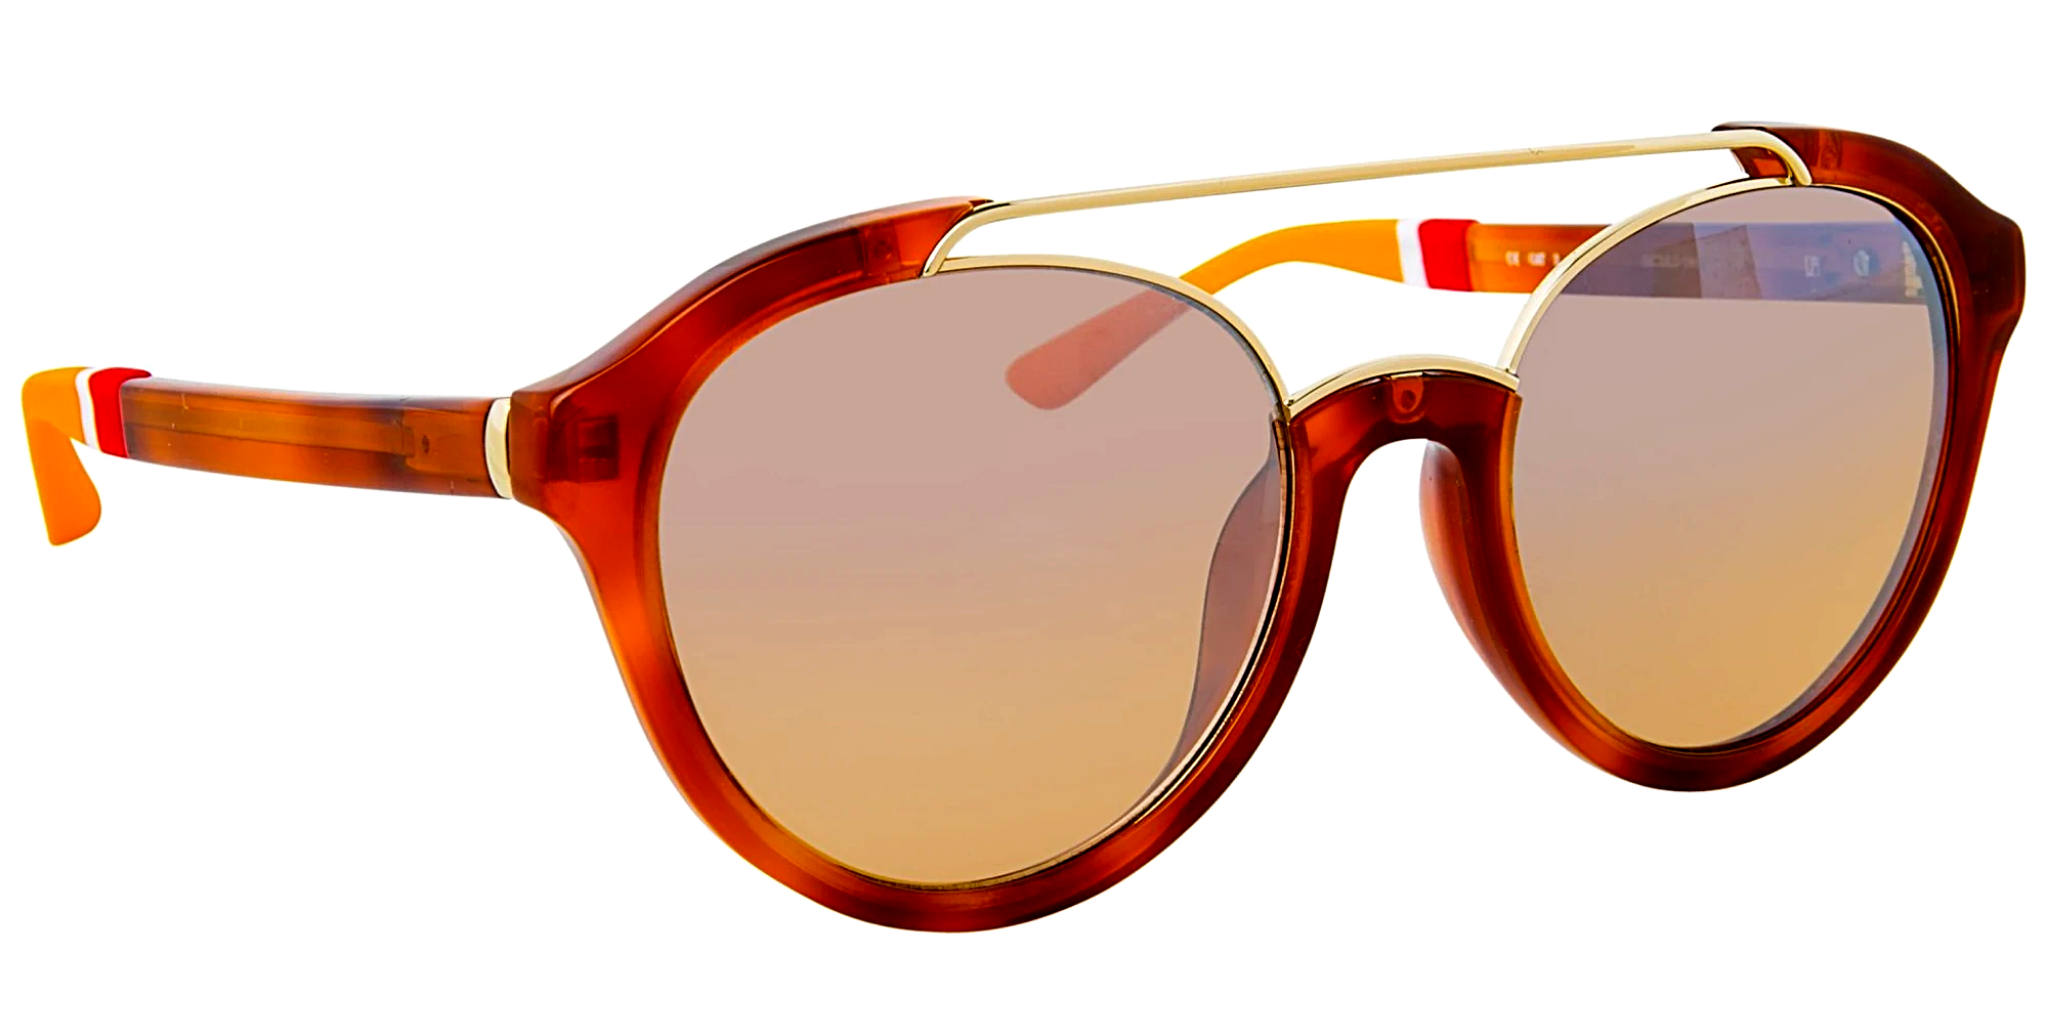 Orlebar Brown Sunglasses Oval Amber Tortise Shell and Orange